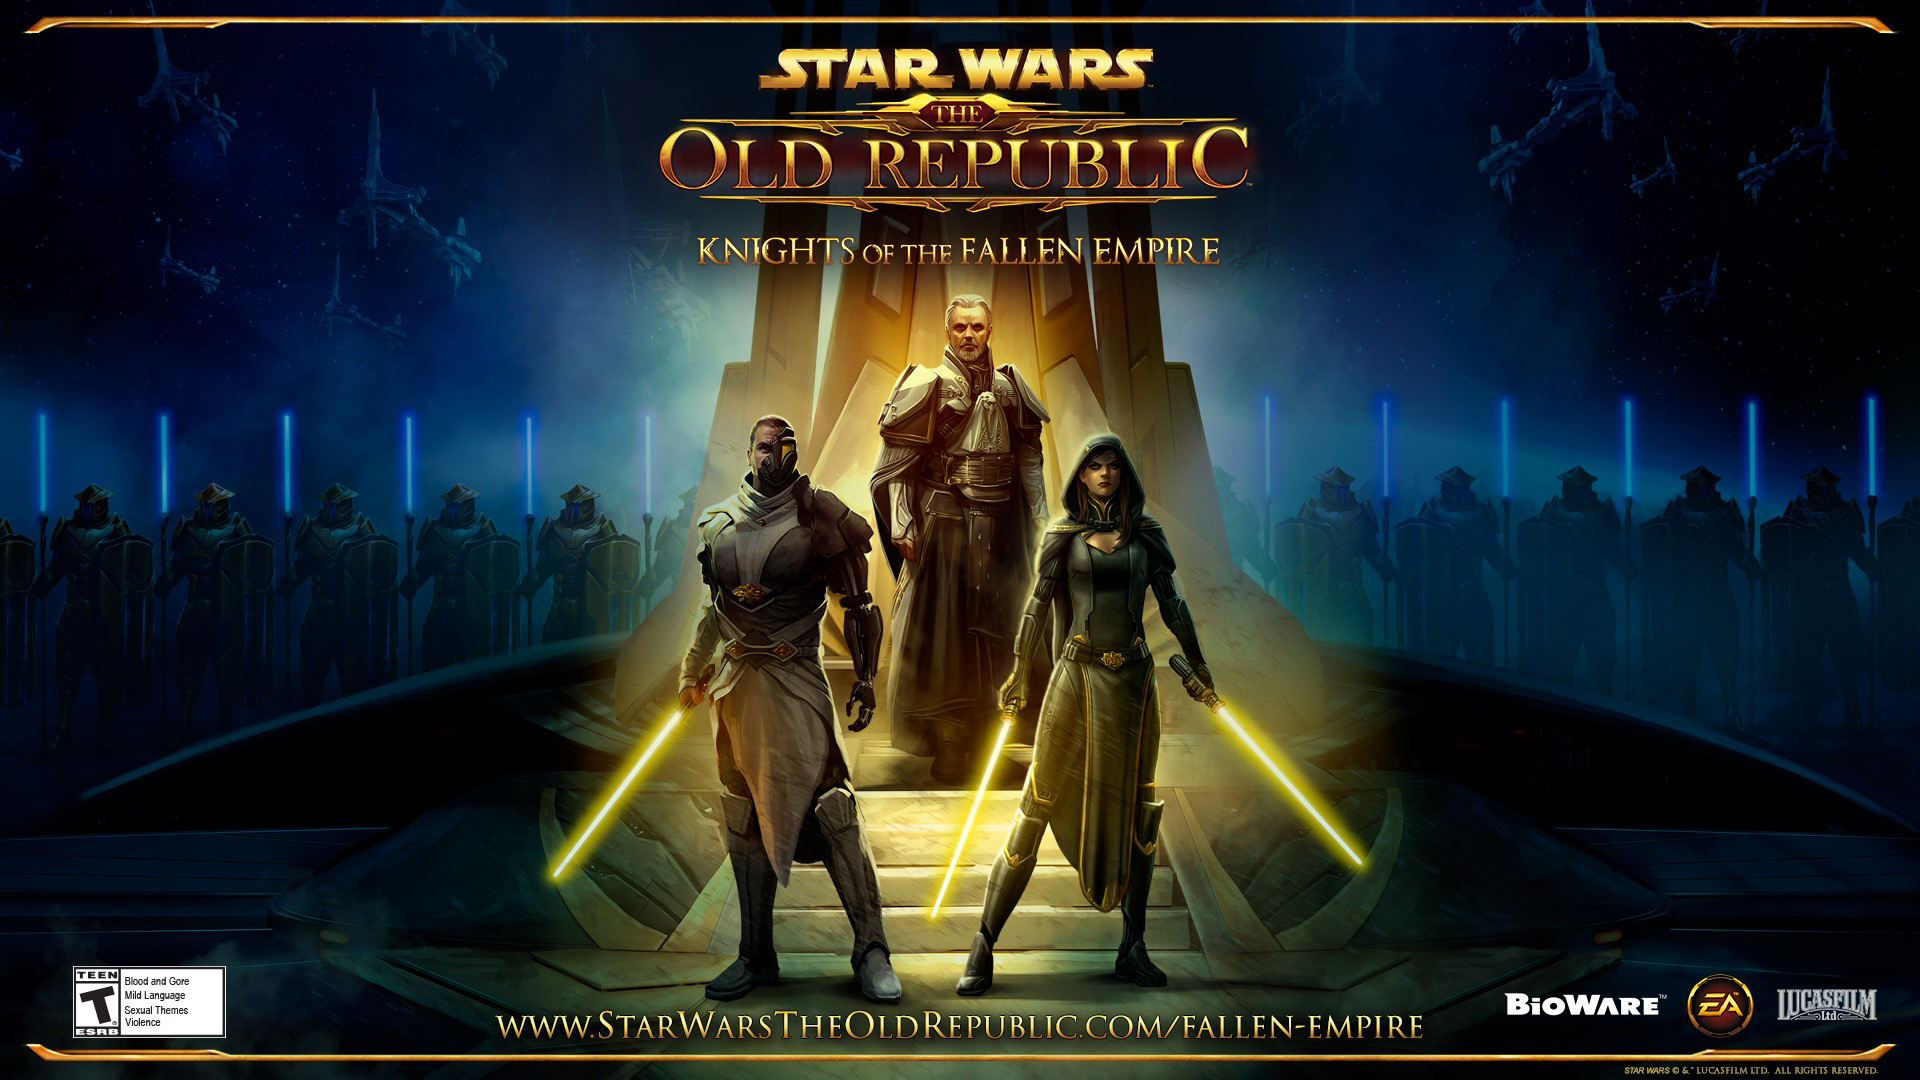 BioWare Launches the Next Epic Adventure in Star Wars™: The